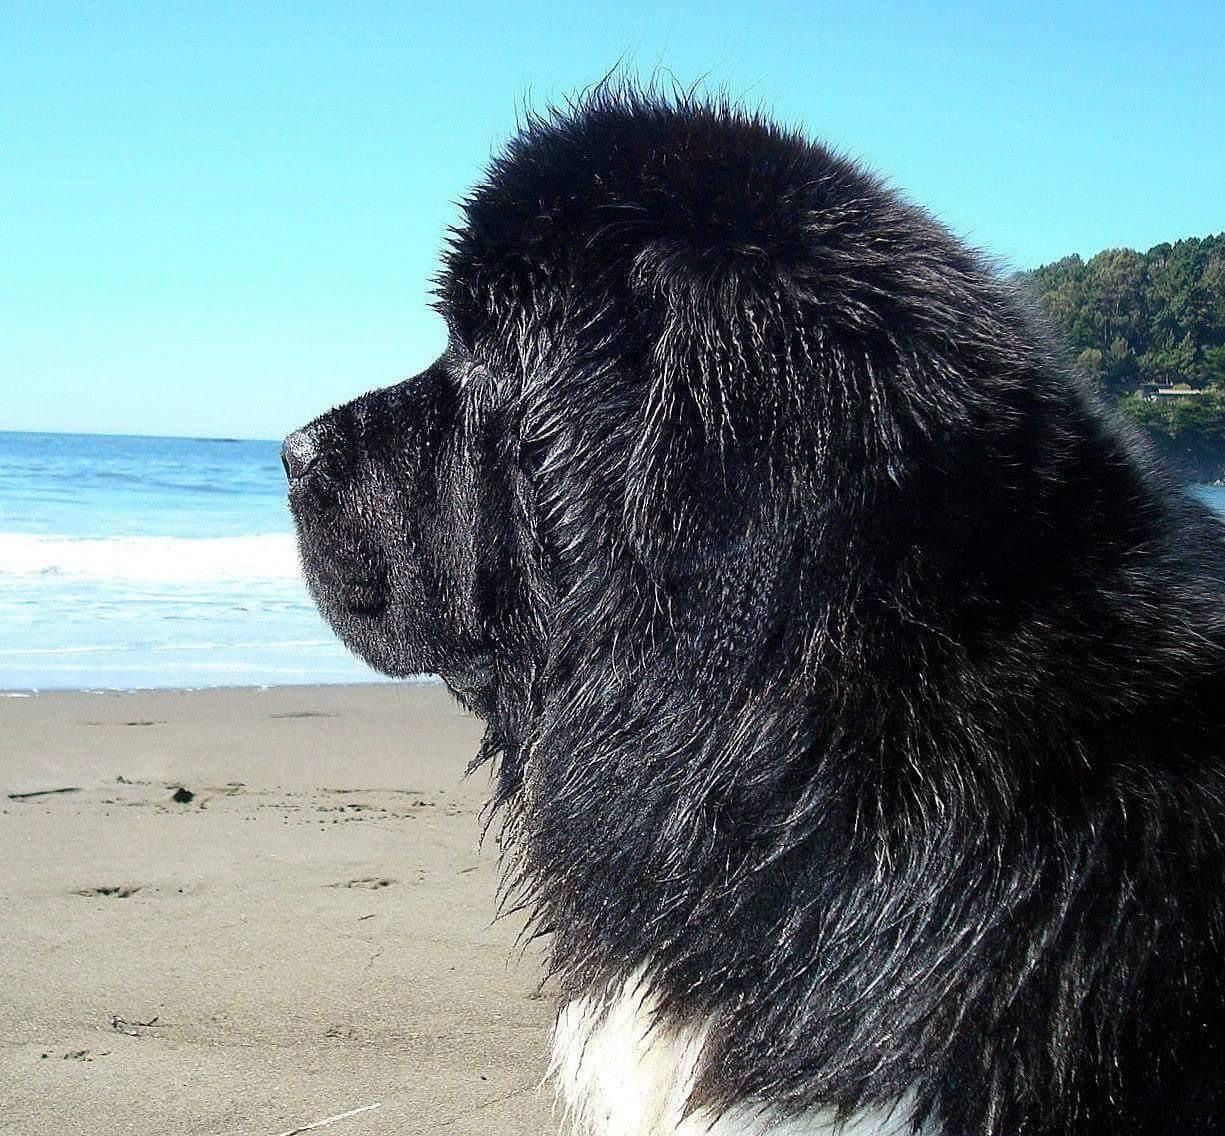 Pin By Kimberly Panagiotou On My Newfies In 2020 Newfoundland Dog Newfoundland Dogs